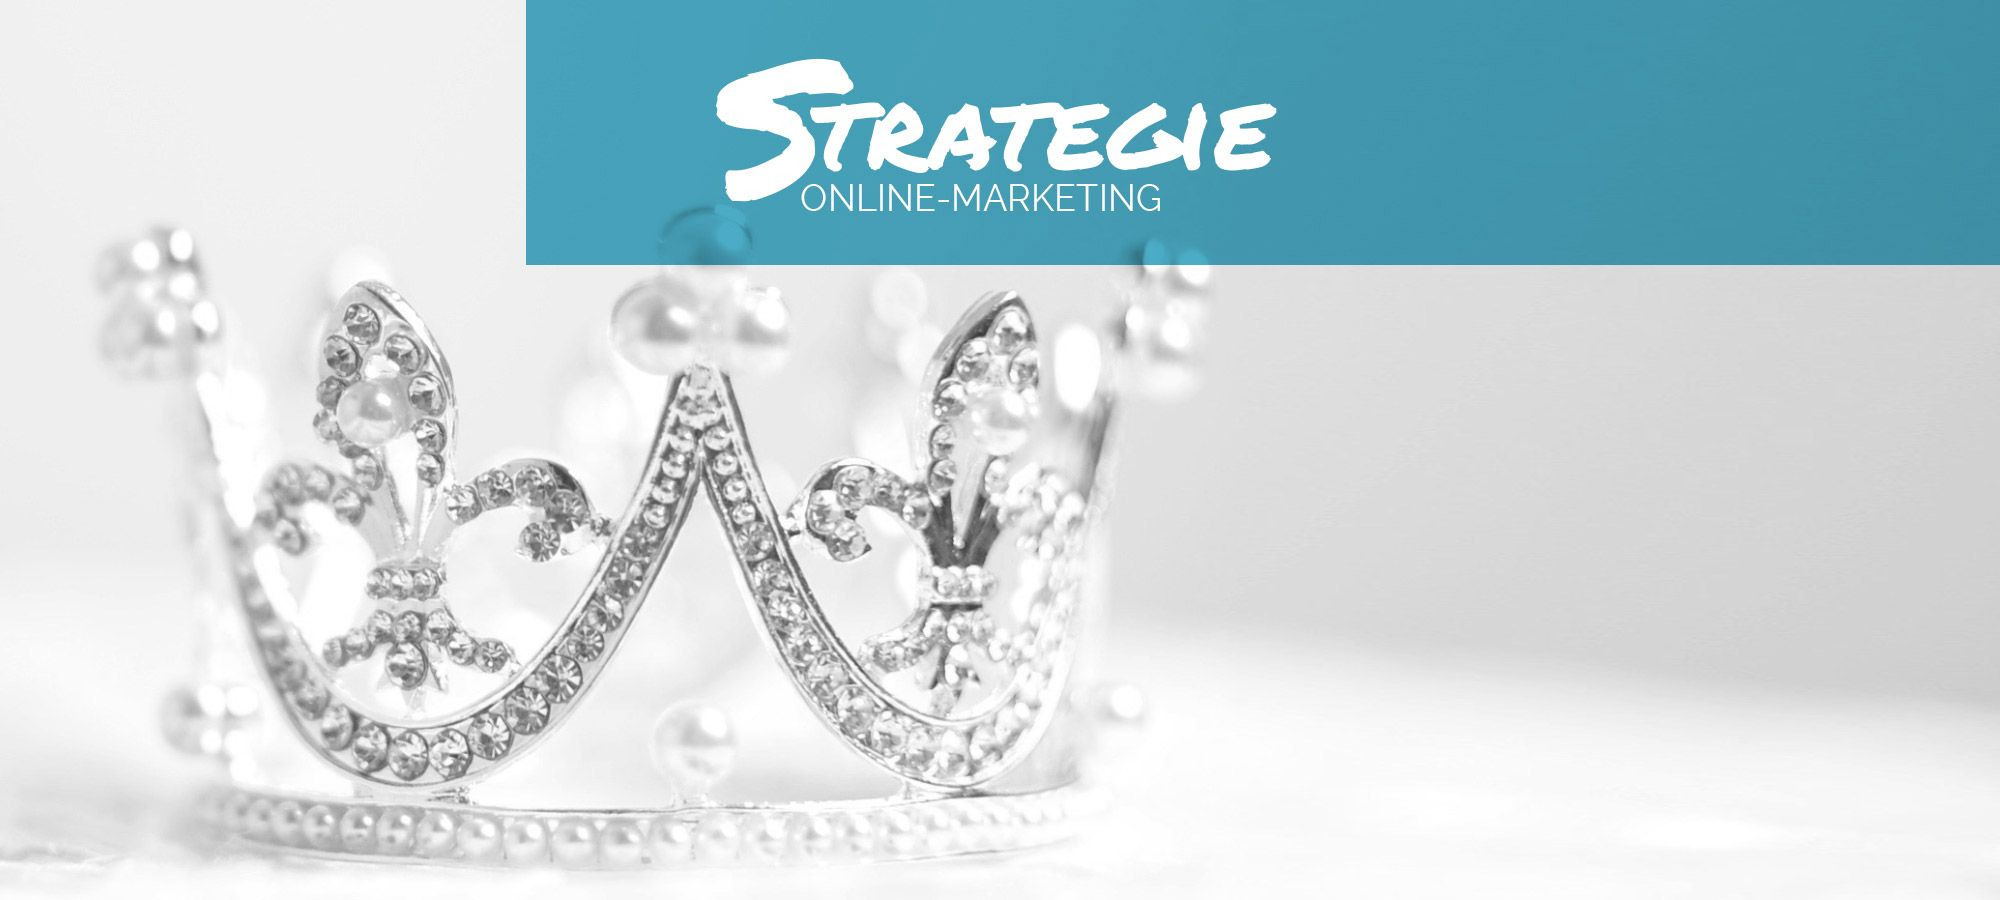 Online-Marketing Strategie